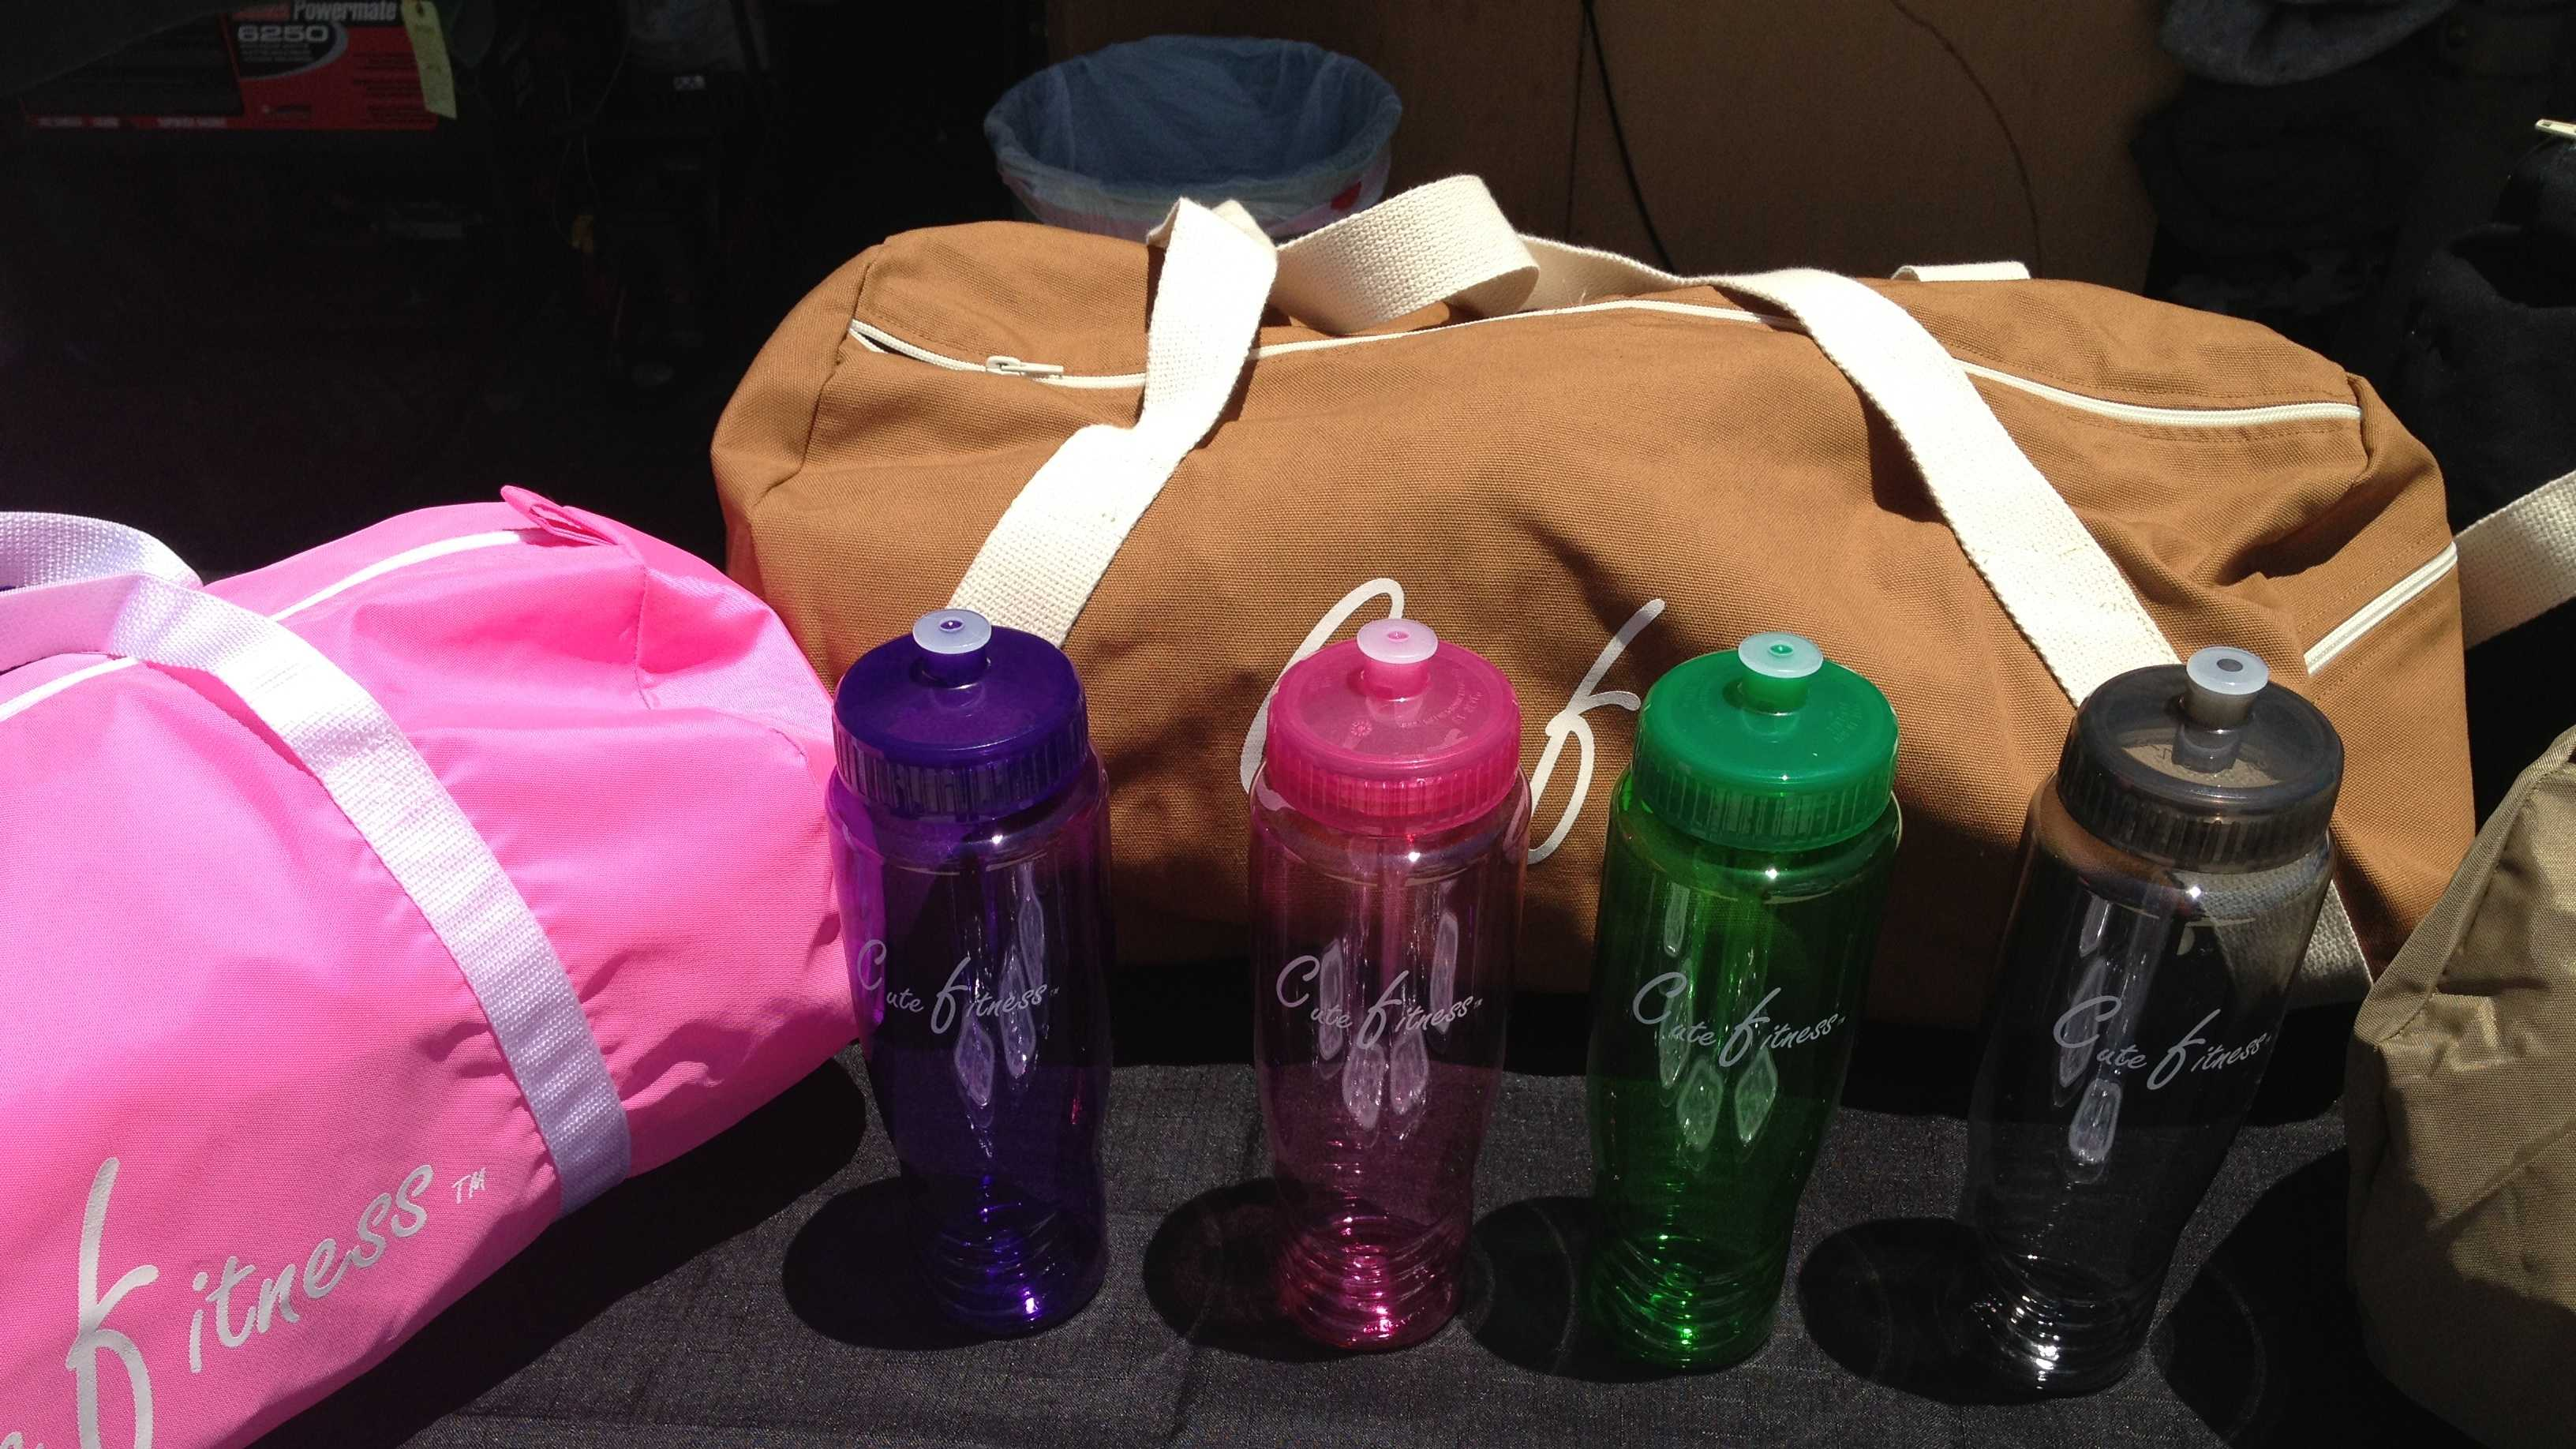 These are just some of the Cute Fitness products that Dorothy James is trying to sell.